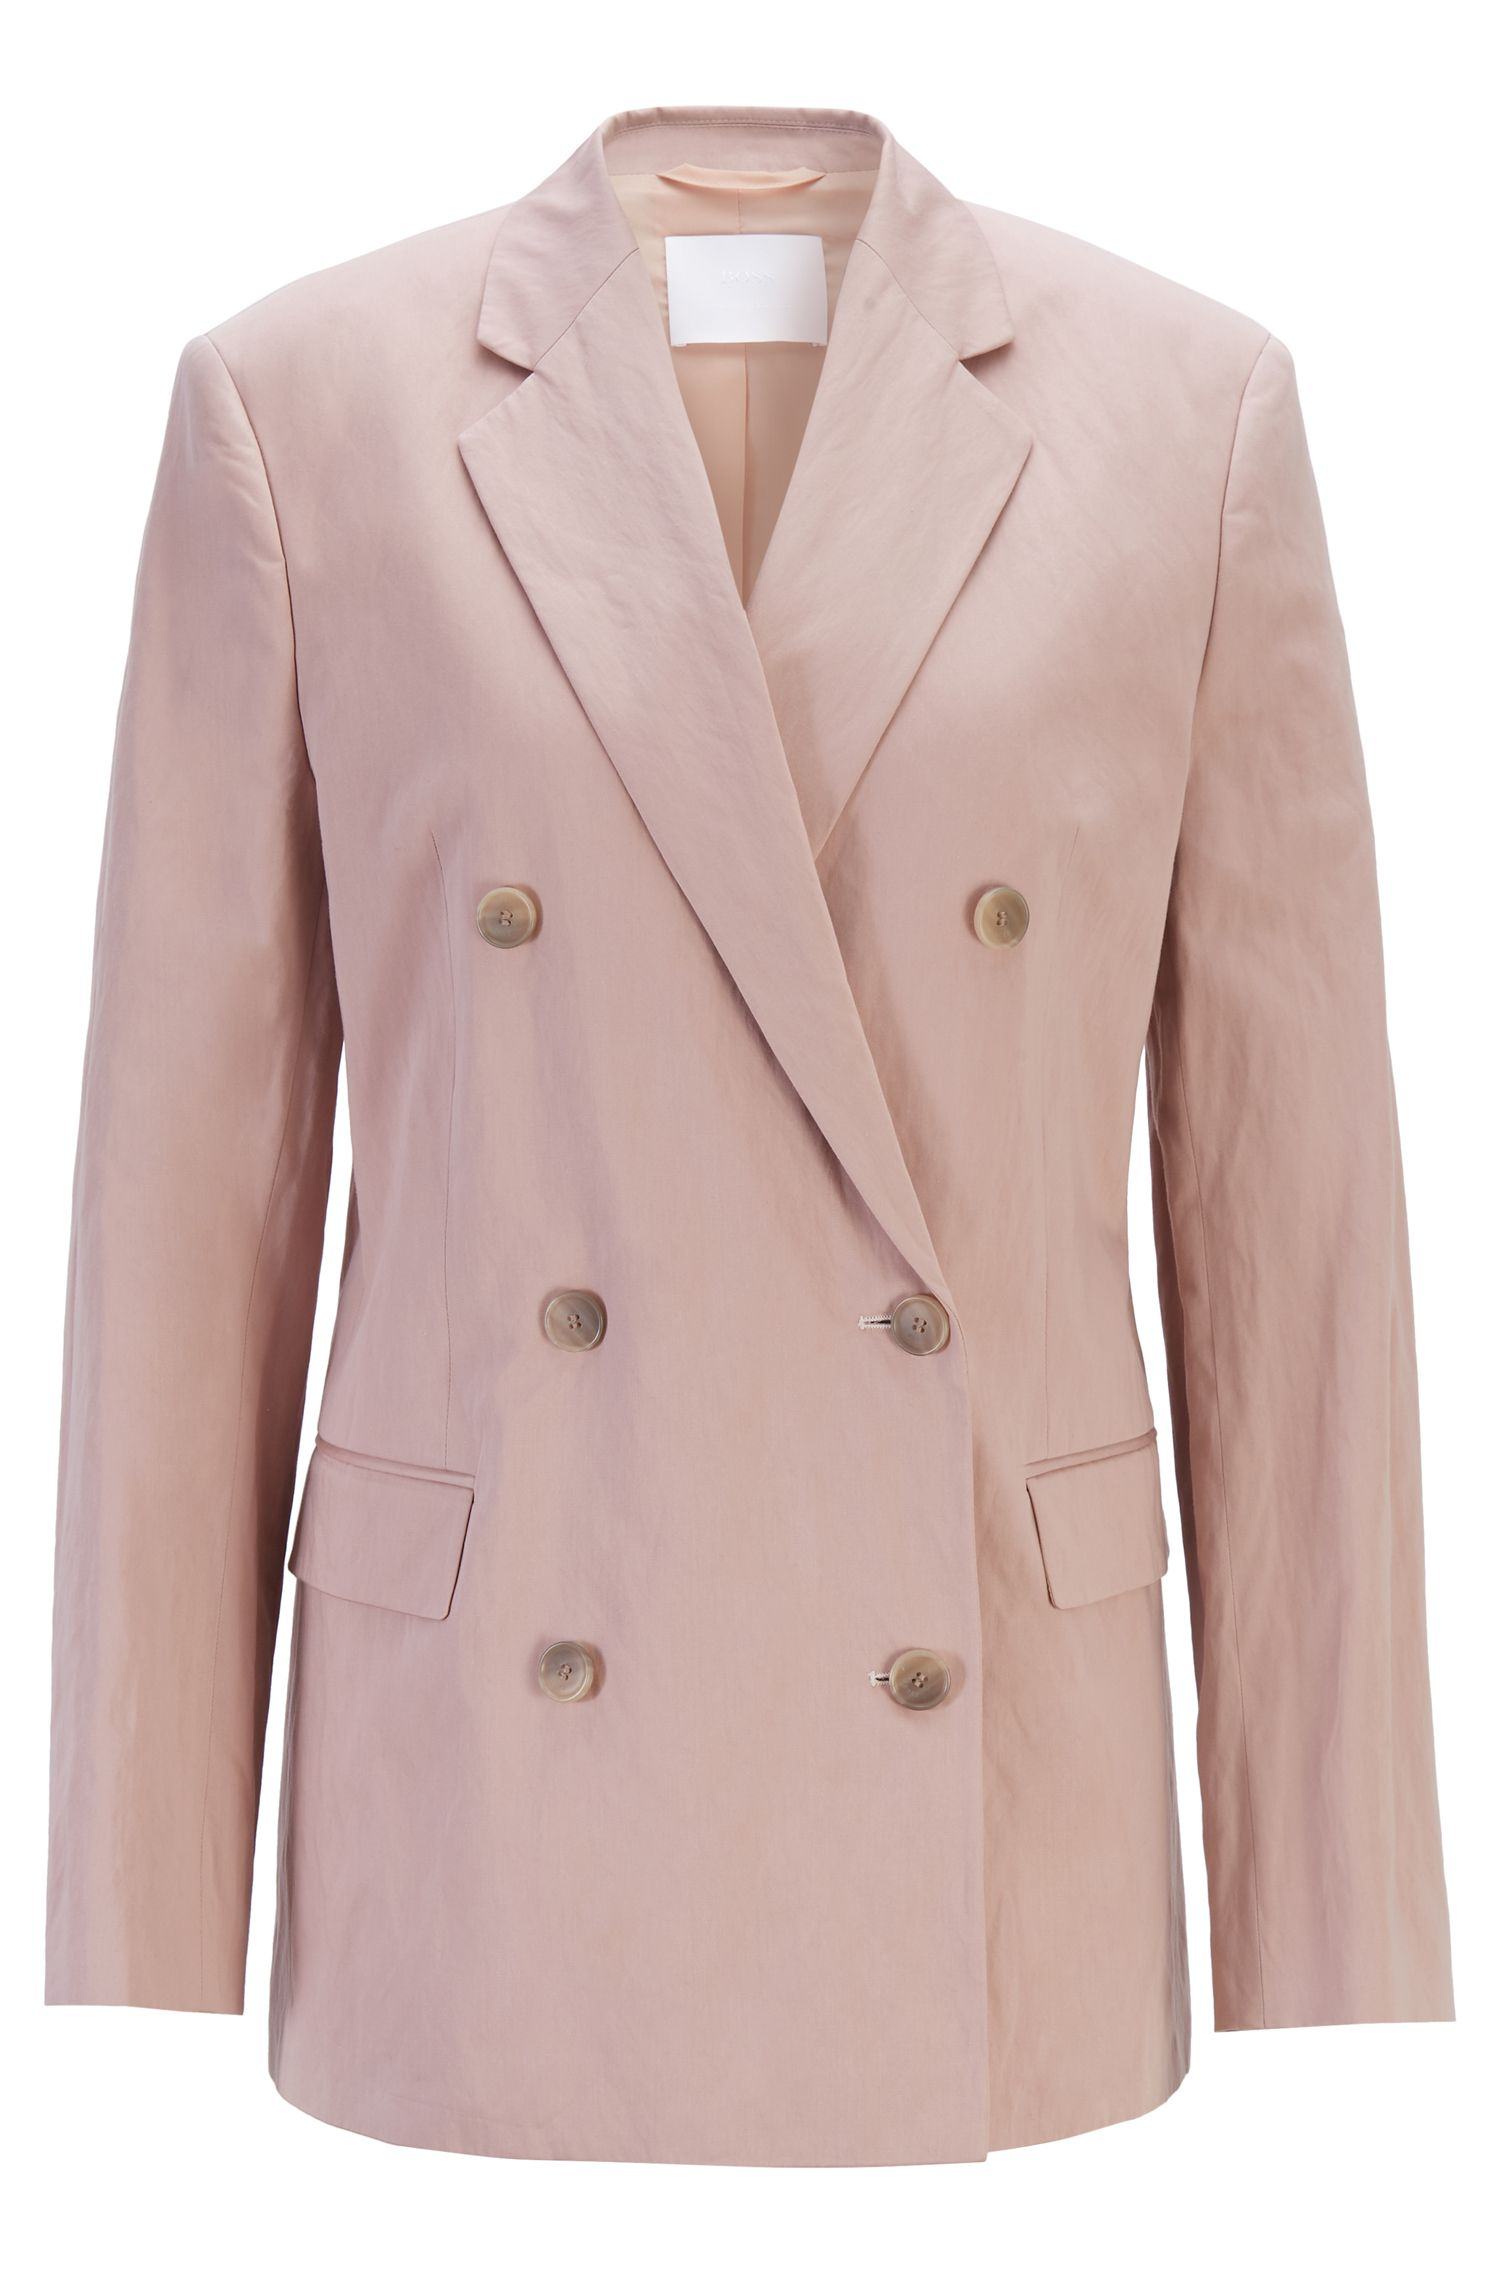 Fashion Show oversized-fit jacket in a lustrous cotton blend, light pink